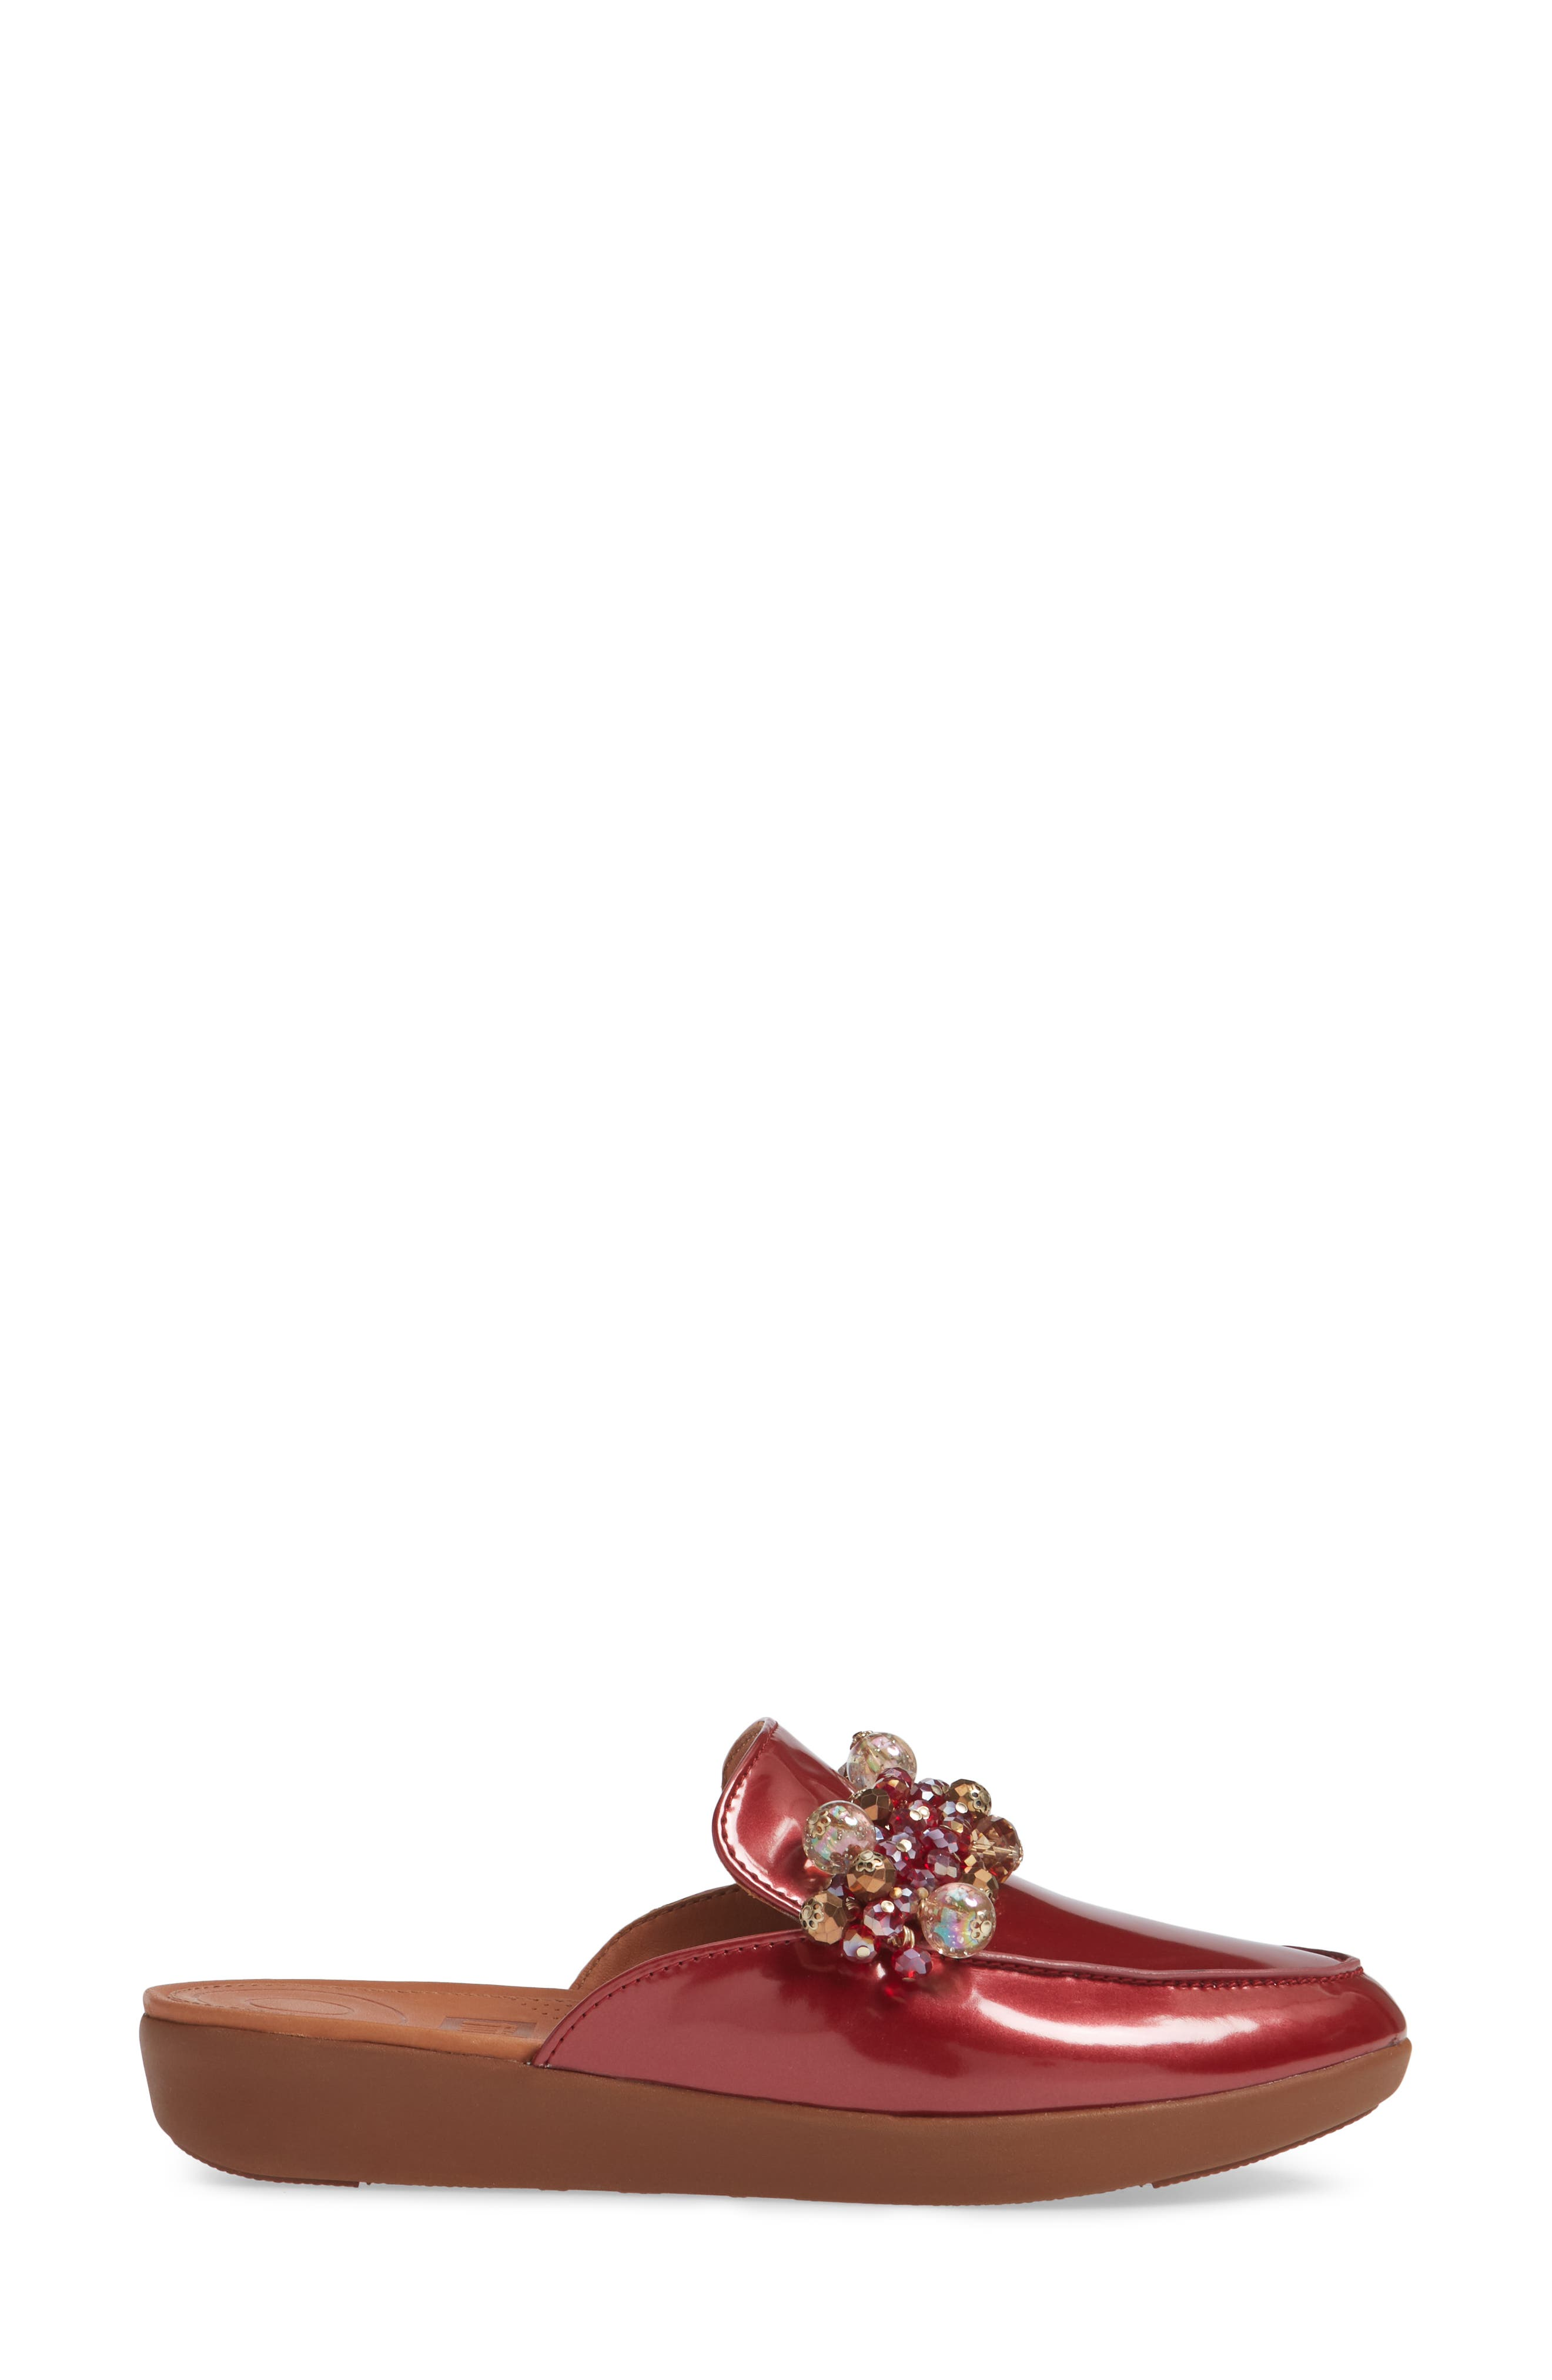 FITFLOP, Serene Beaded Mule, Alternate thumbnail 3, color, FIRE RED PATENT LEATHER